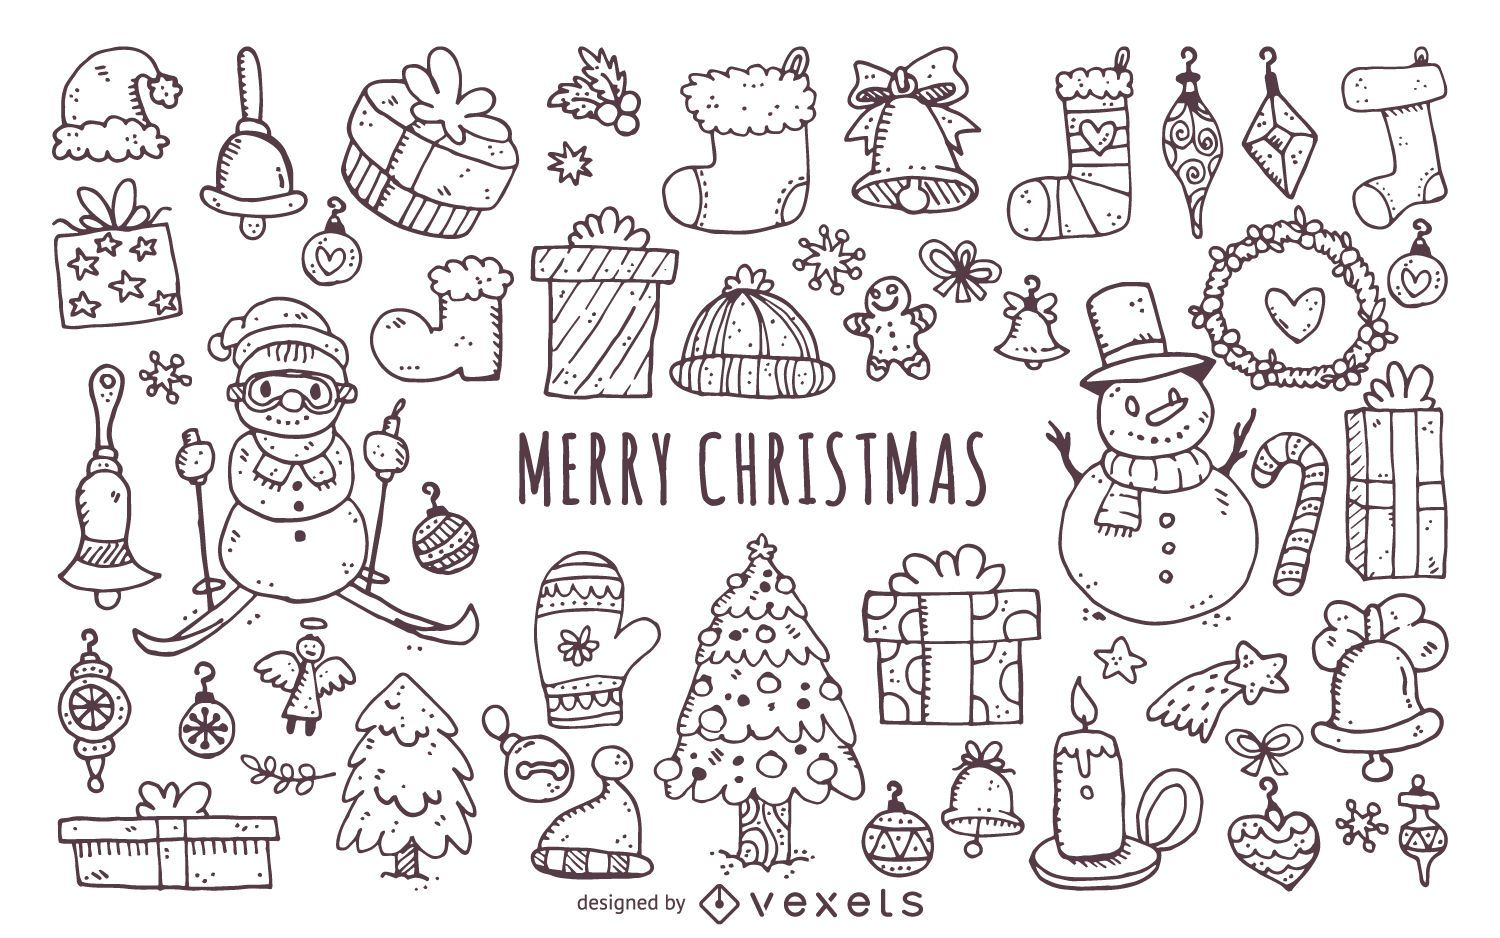 Christmas Elements Doodles Icon Set Vector Download